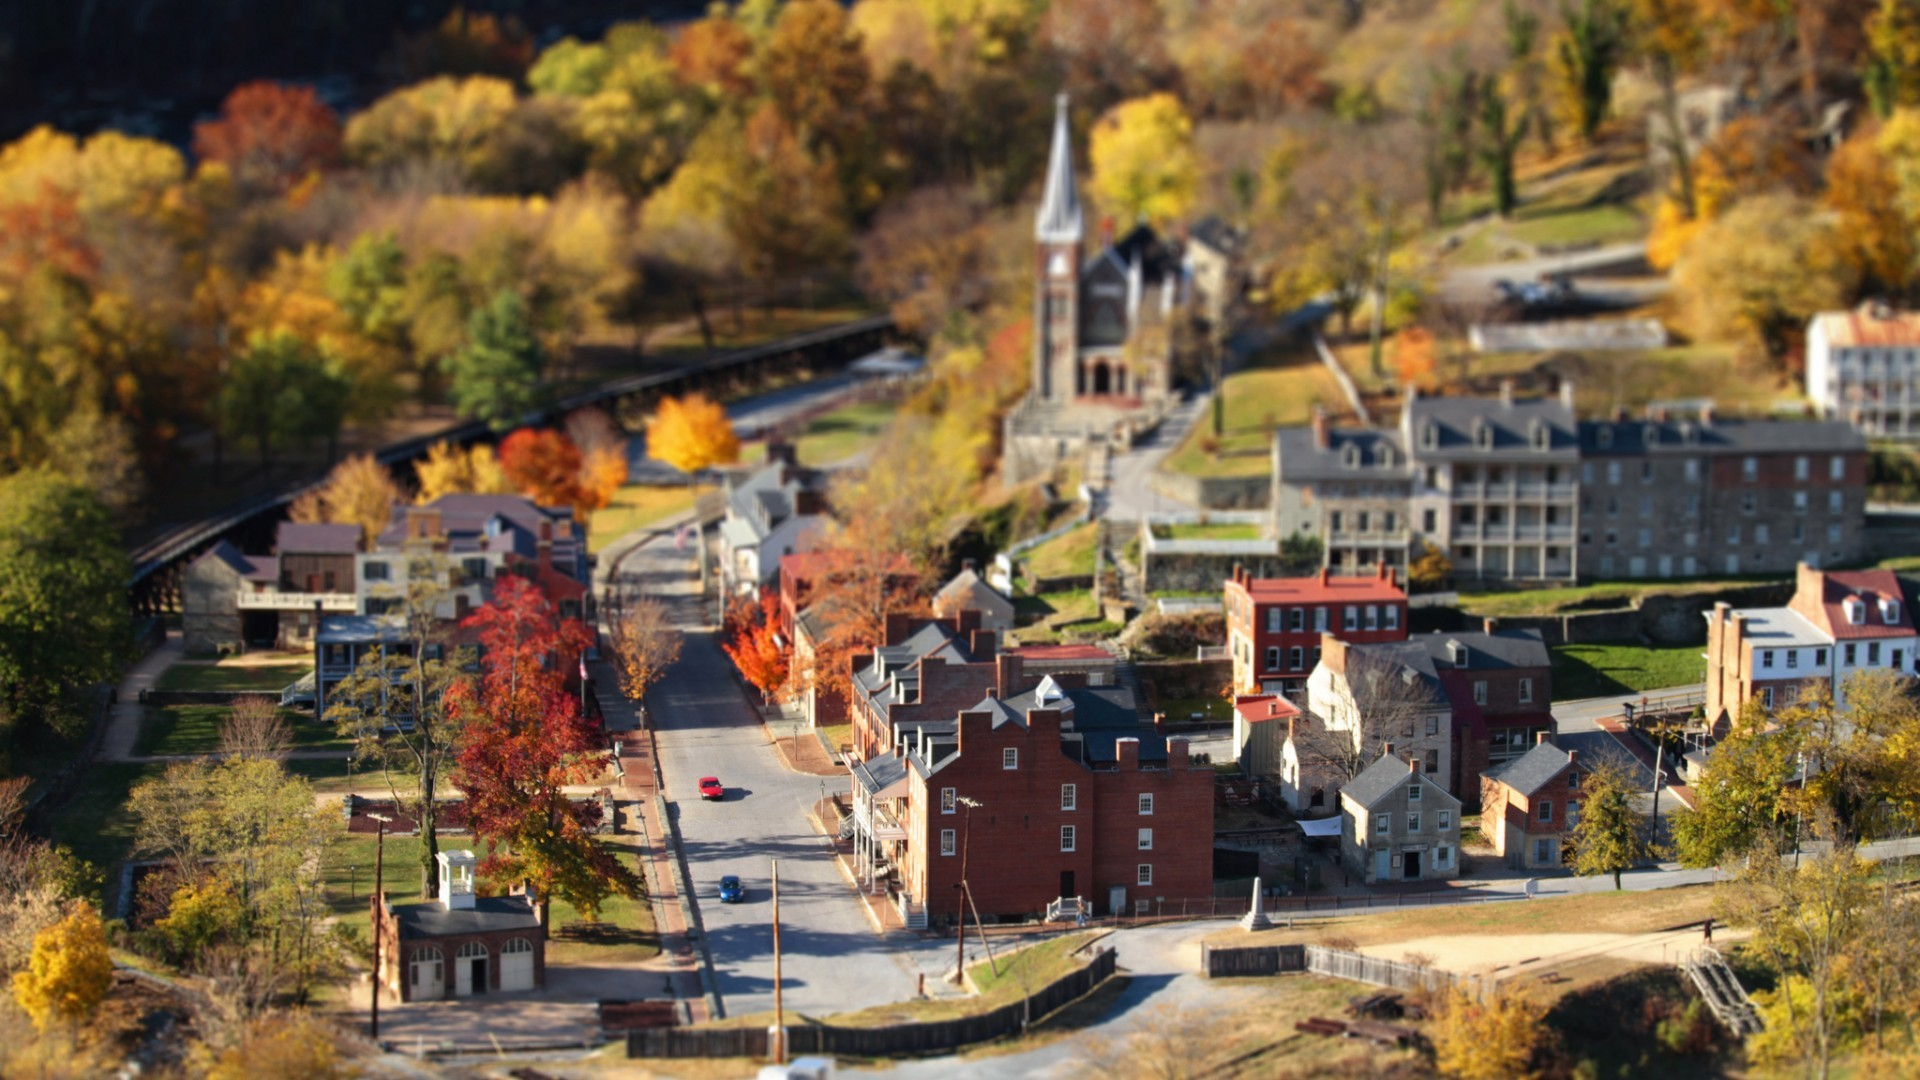 General 1920x1080 town fall road landscape tilt shift